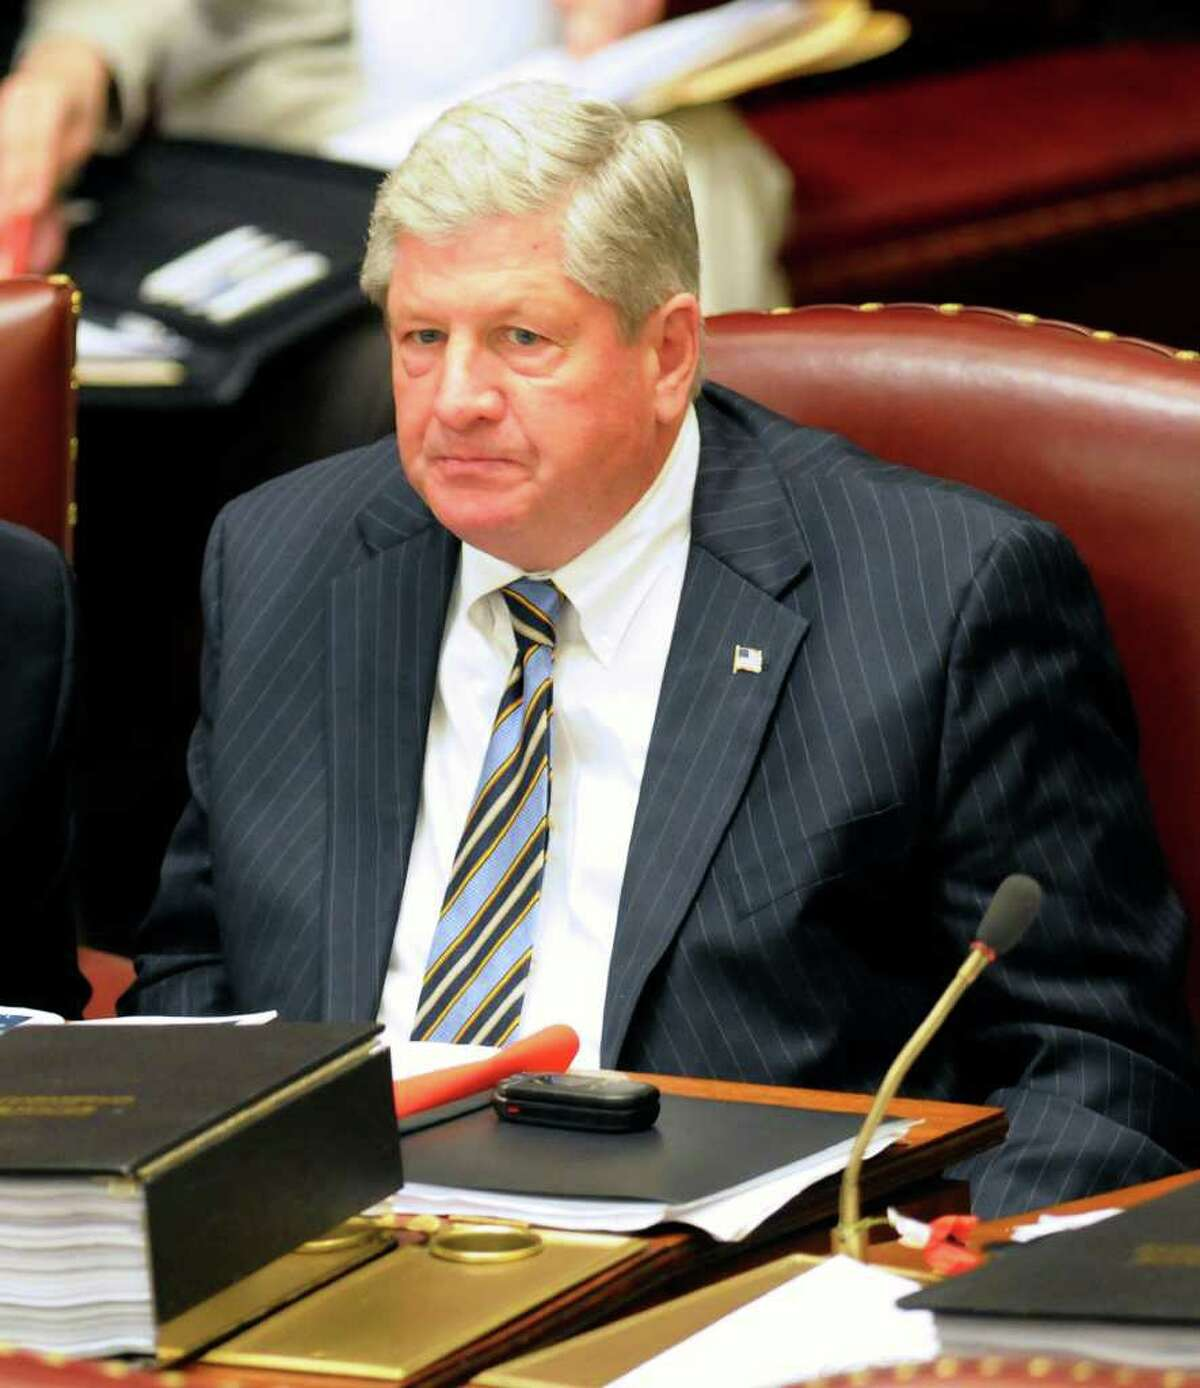 Sen. Roy J. McDonald, R- Stillwater, during a session of the New York state Senate at the Capitol in Albany, N.Y., Tuesday, June 14, 2011. (AP Photo/Hans Pennink)